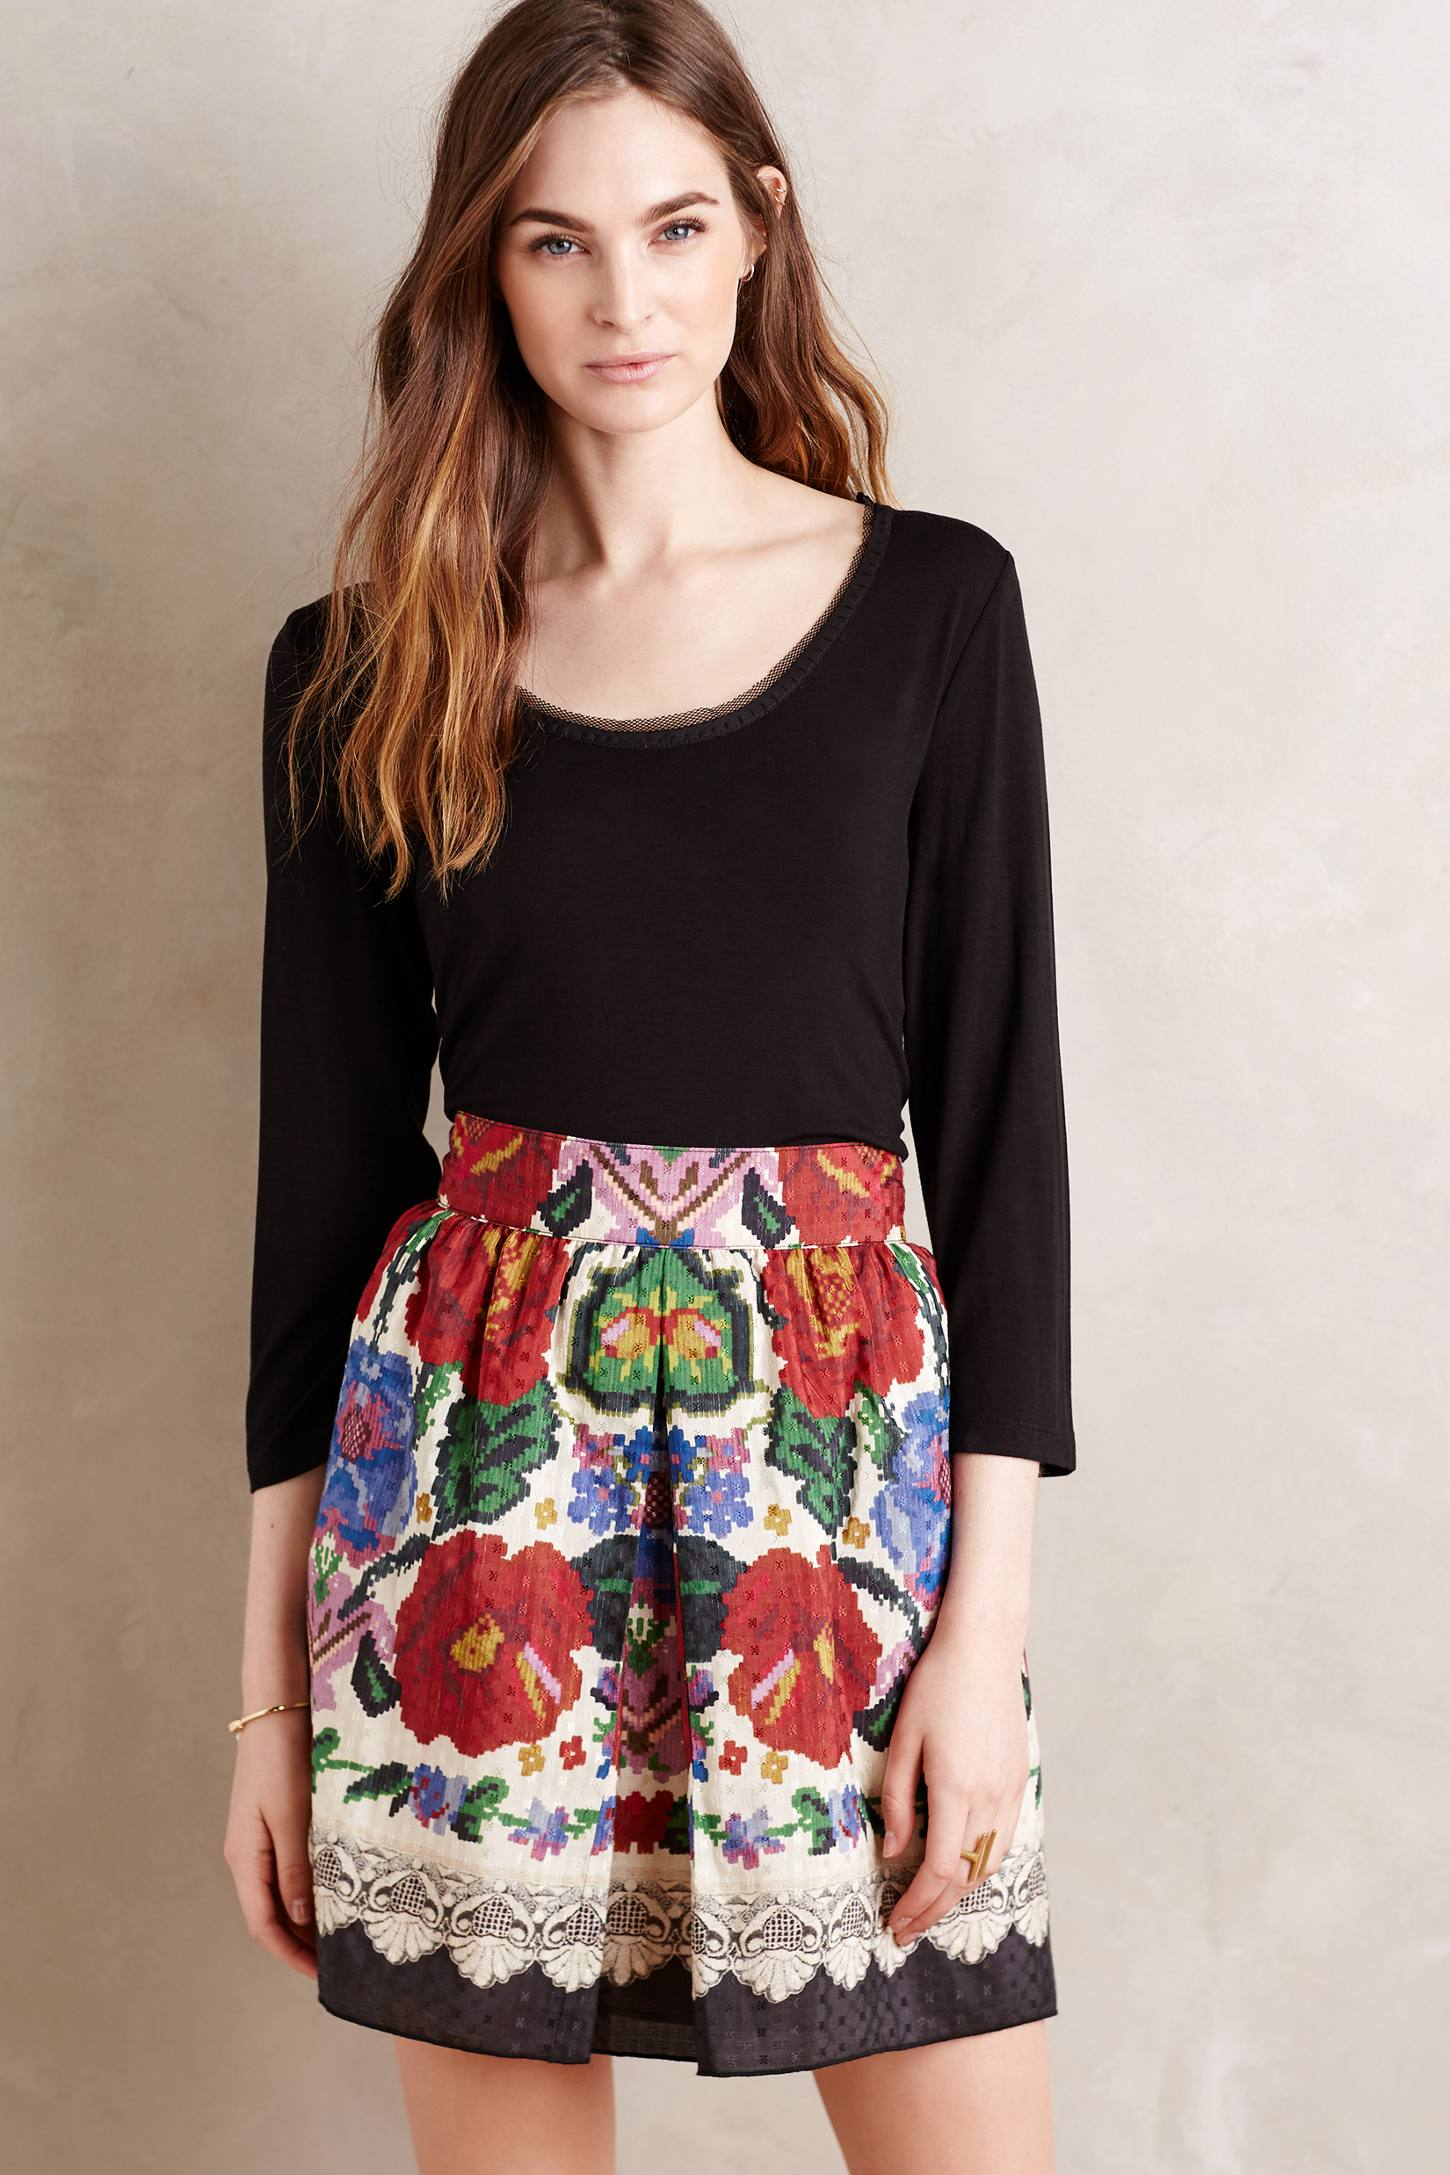 30ea1586904 Anthropologie's New Arrivals: Your Fall Wardrobe - Topista